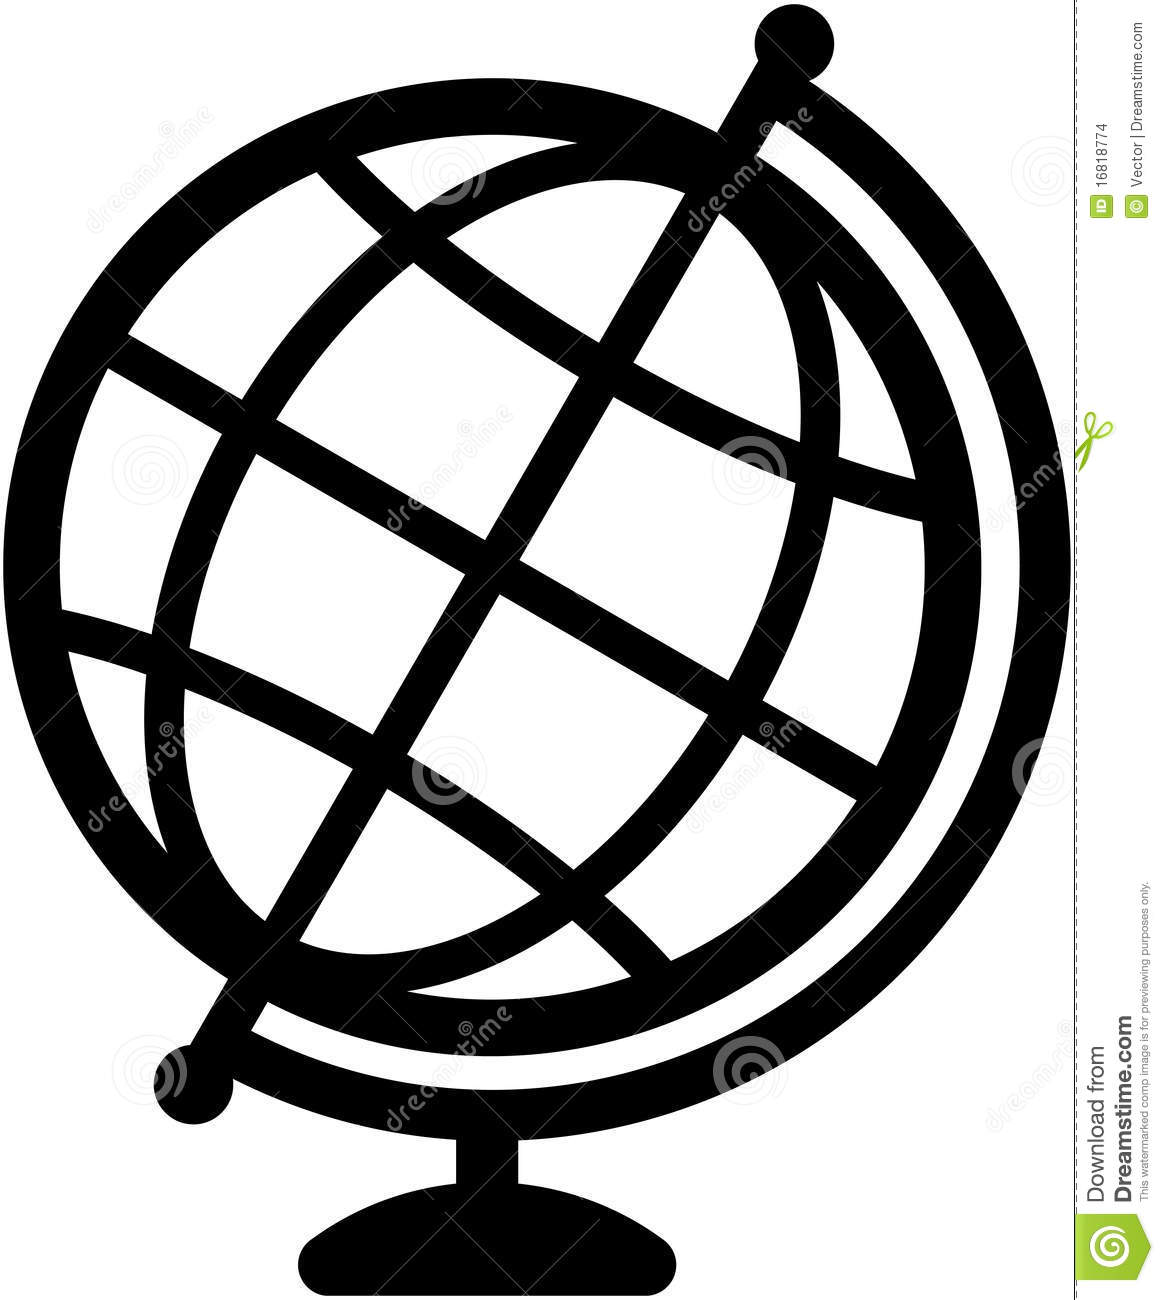 Line Drawing Geography : Geography earth globe icon illustration stock images